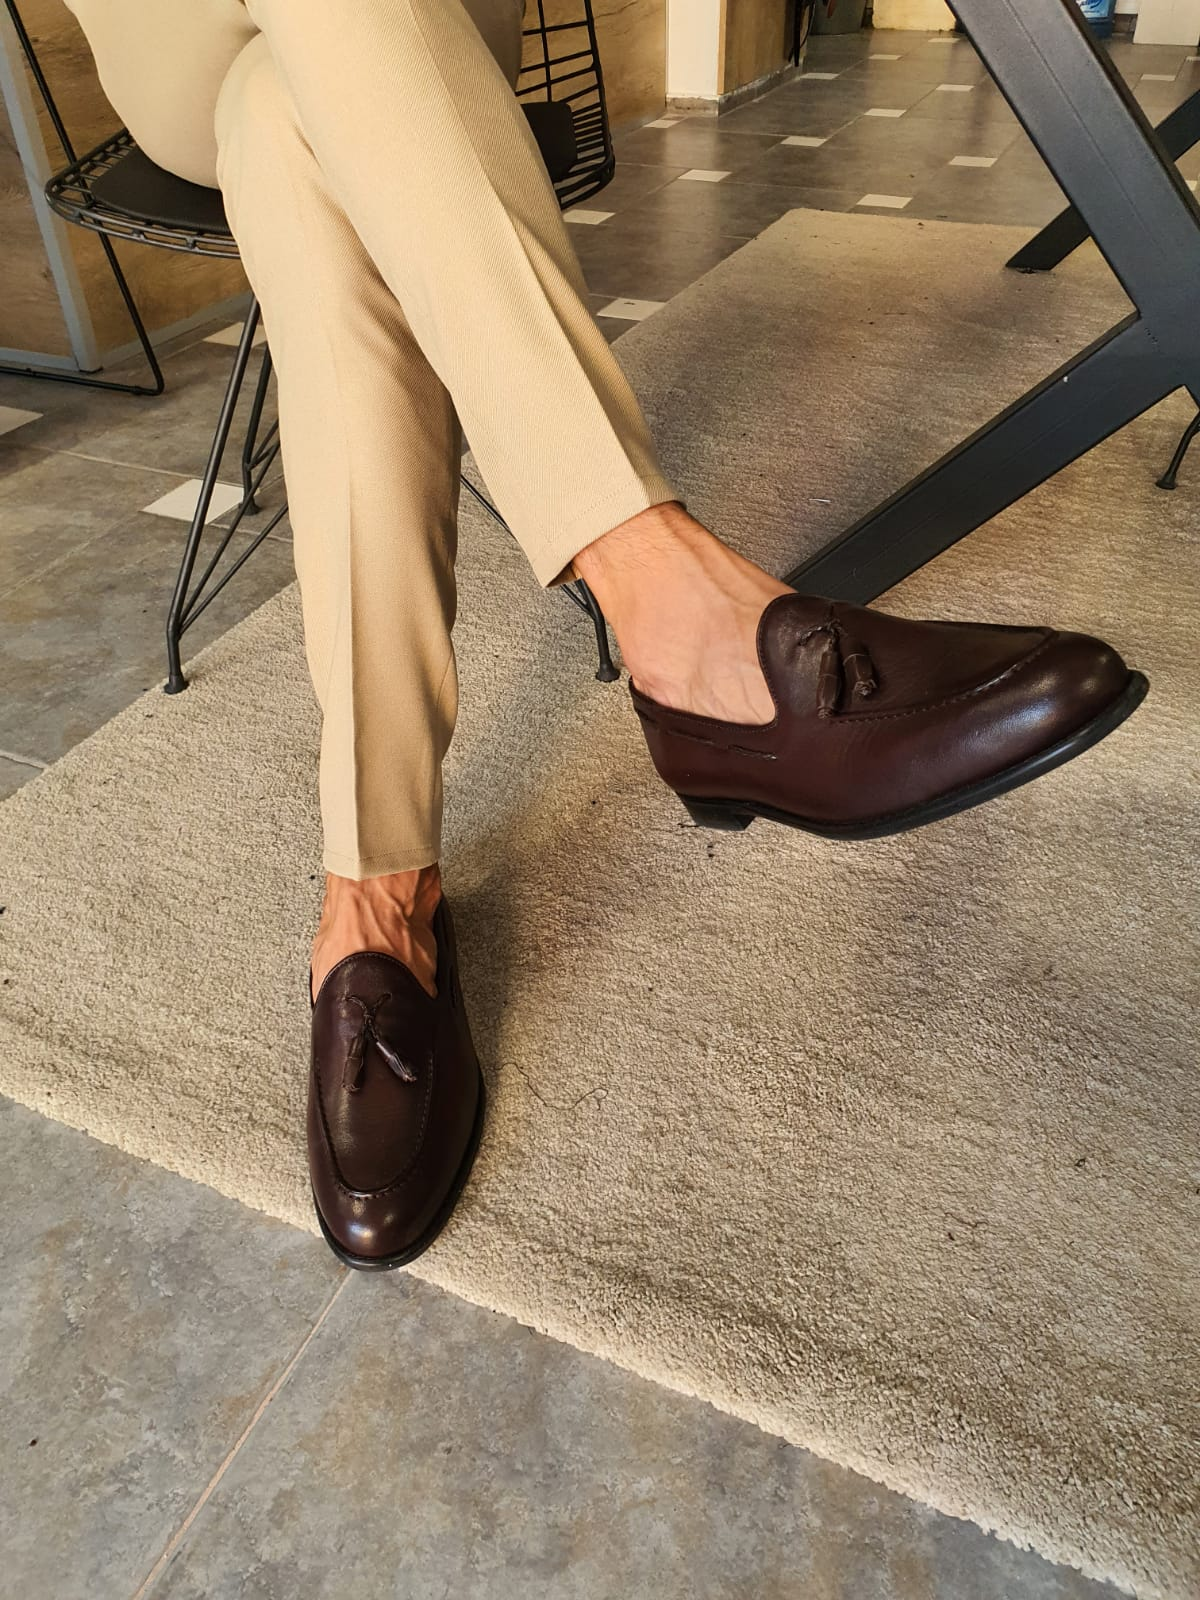 How To Rock Shoes Without Socks If You Want To Look Like a Sartorial King by GentWith Blog